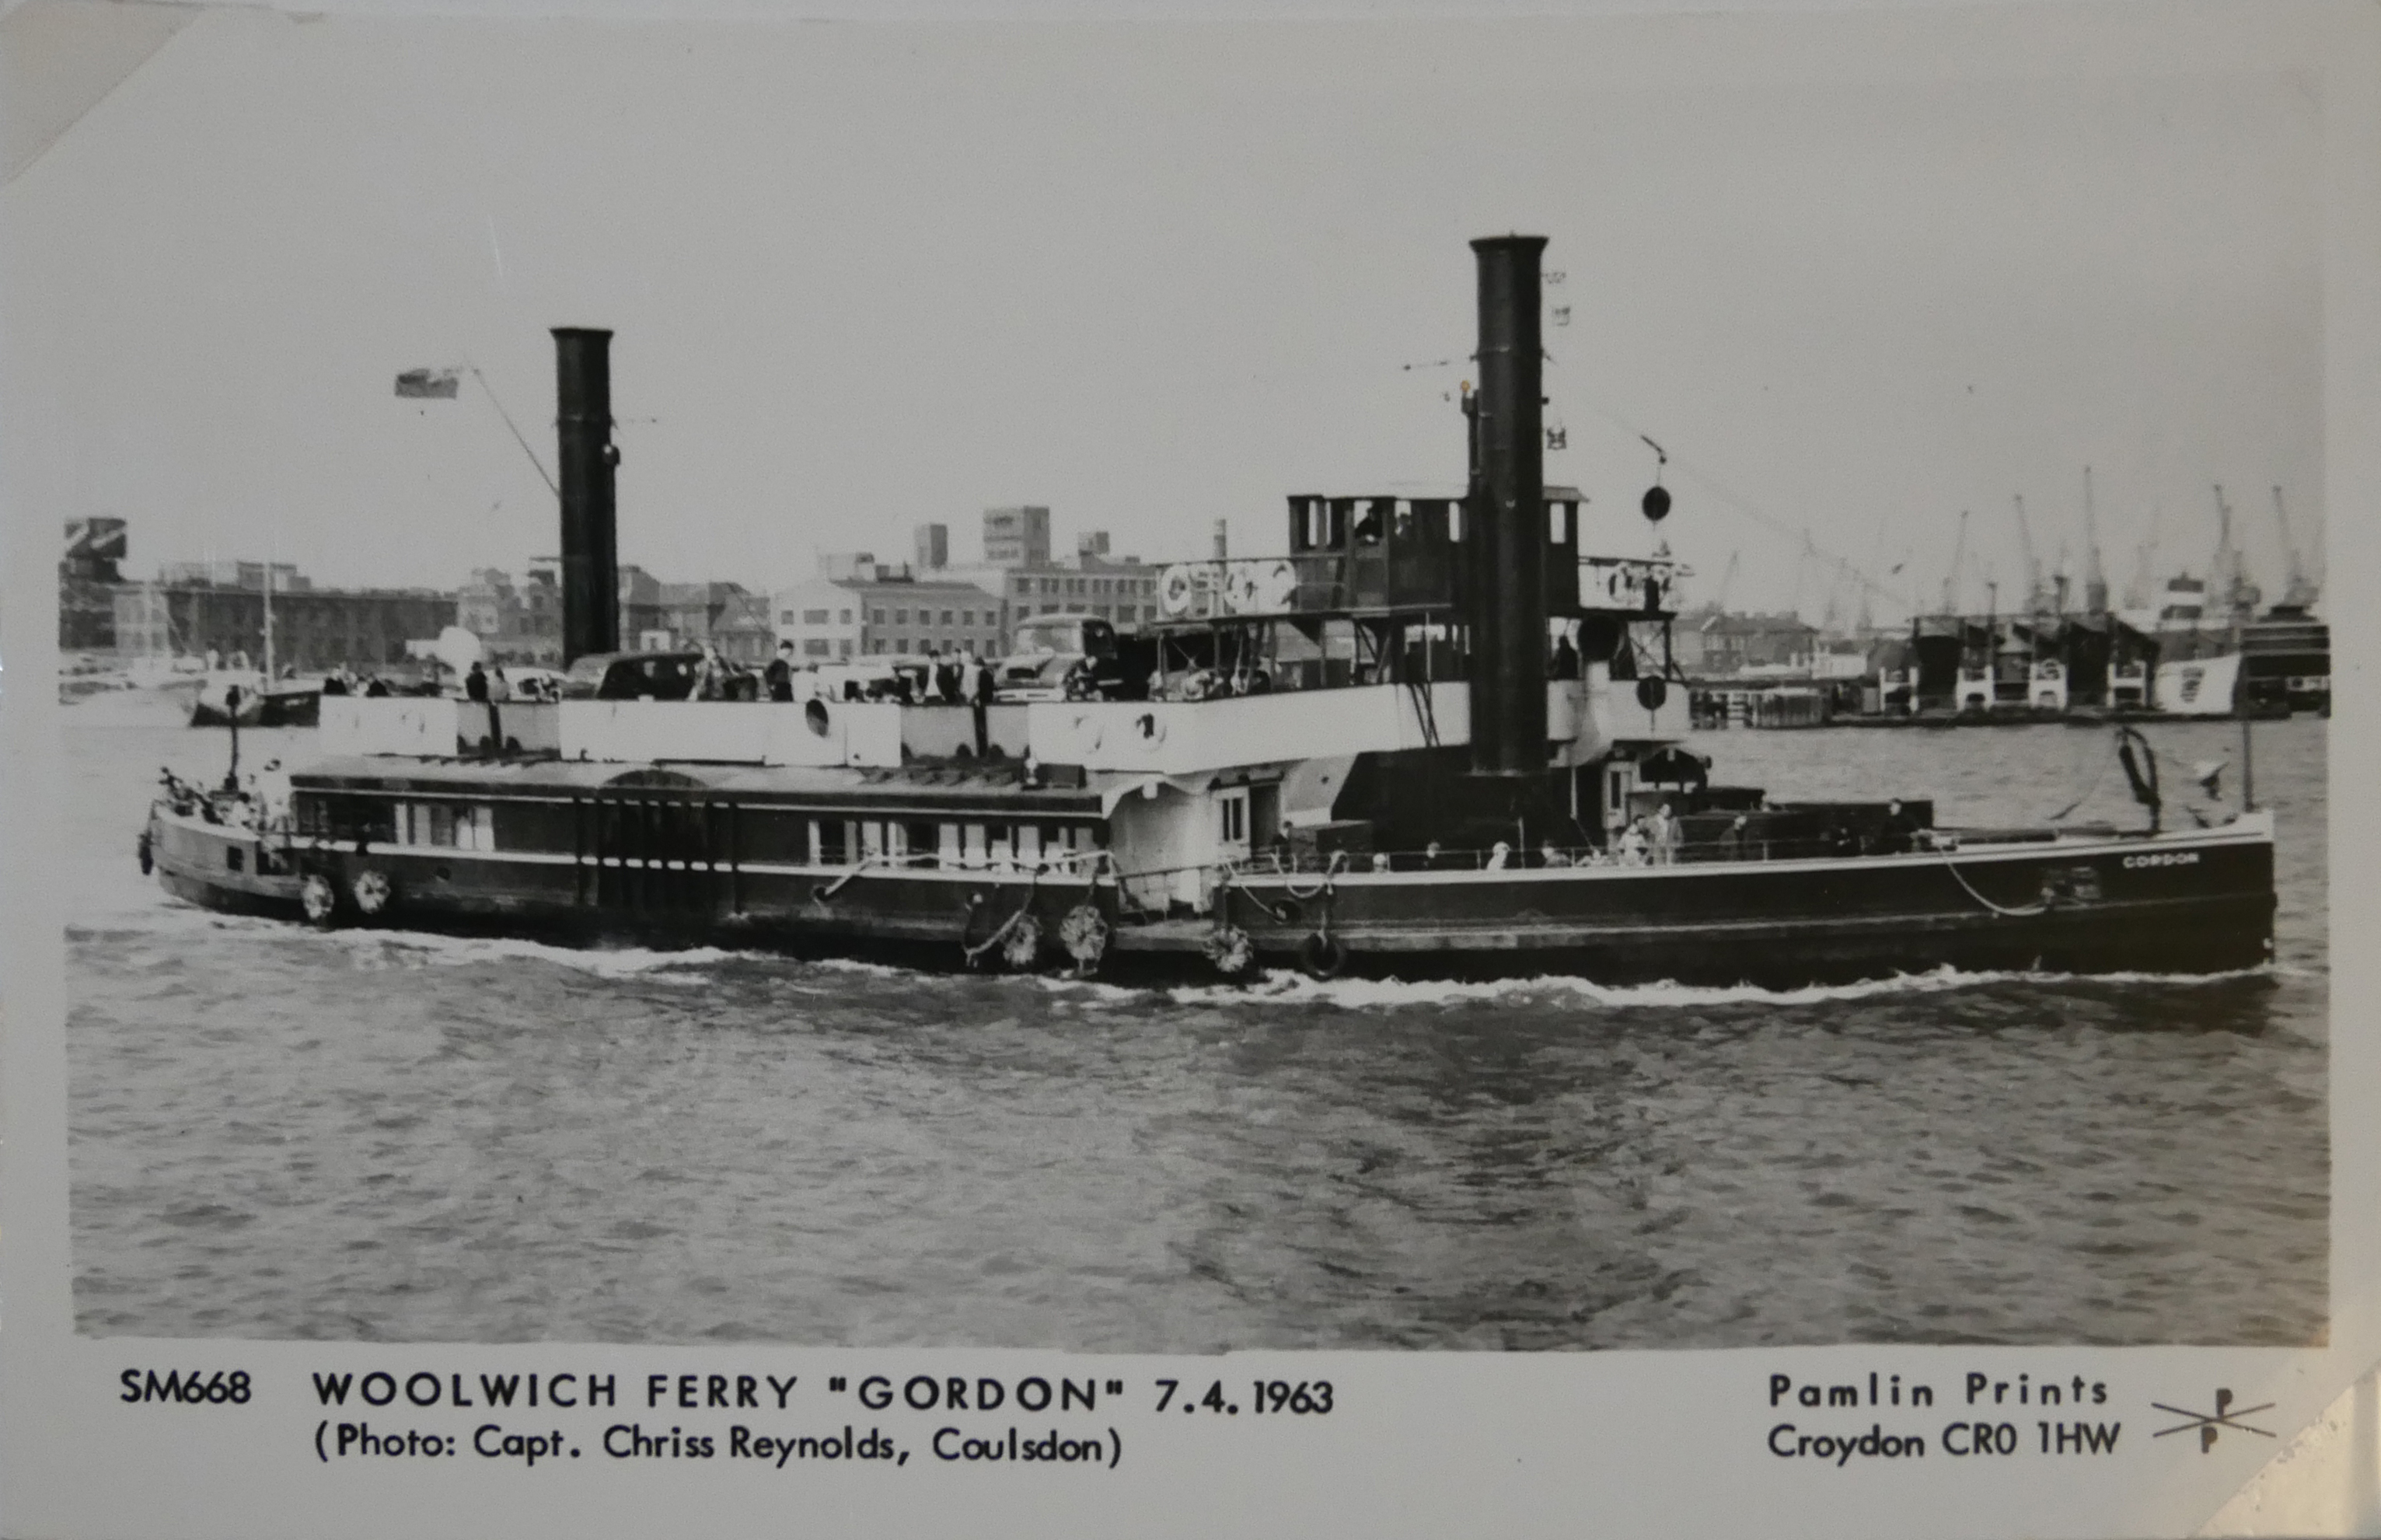 AN ALBUM OF BLACK AND WHITE PHOTOGRAPHIC POSTCARDS OF STEAM SHIPS Issued by Pamlin Prints, including - Image 8 of 10